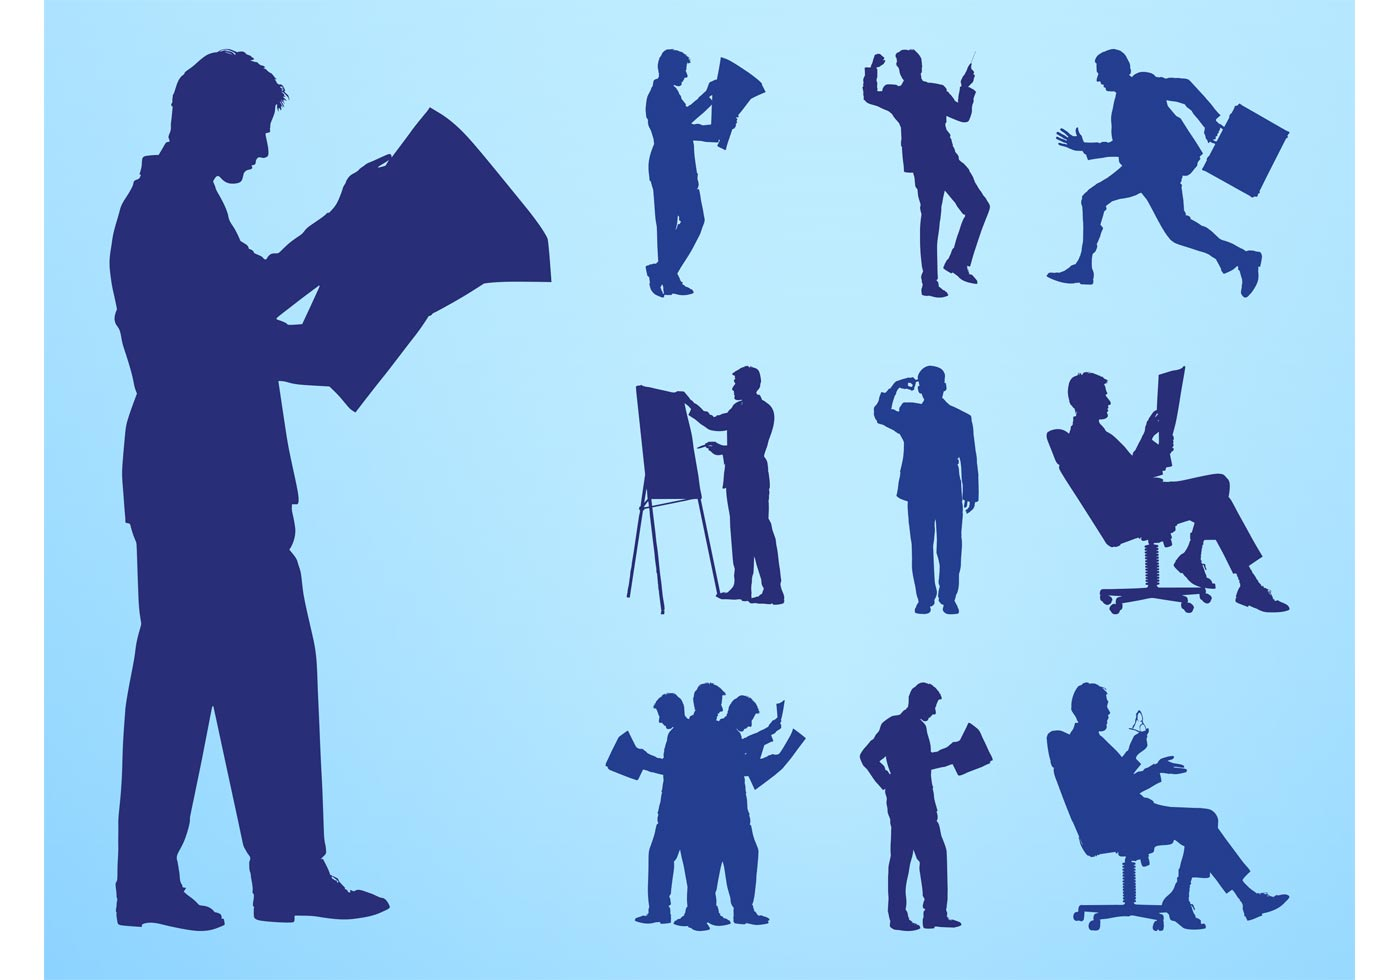 Silhouette Paintings Of People Reading And Working People Silhouettes Download Free